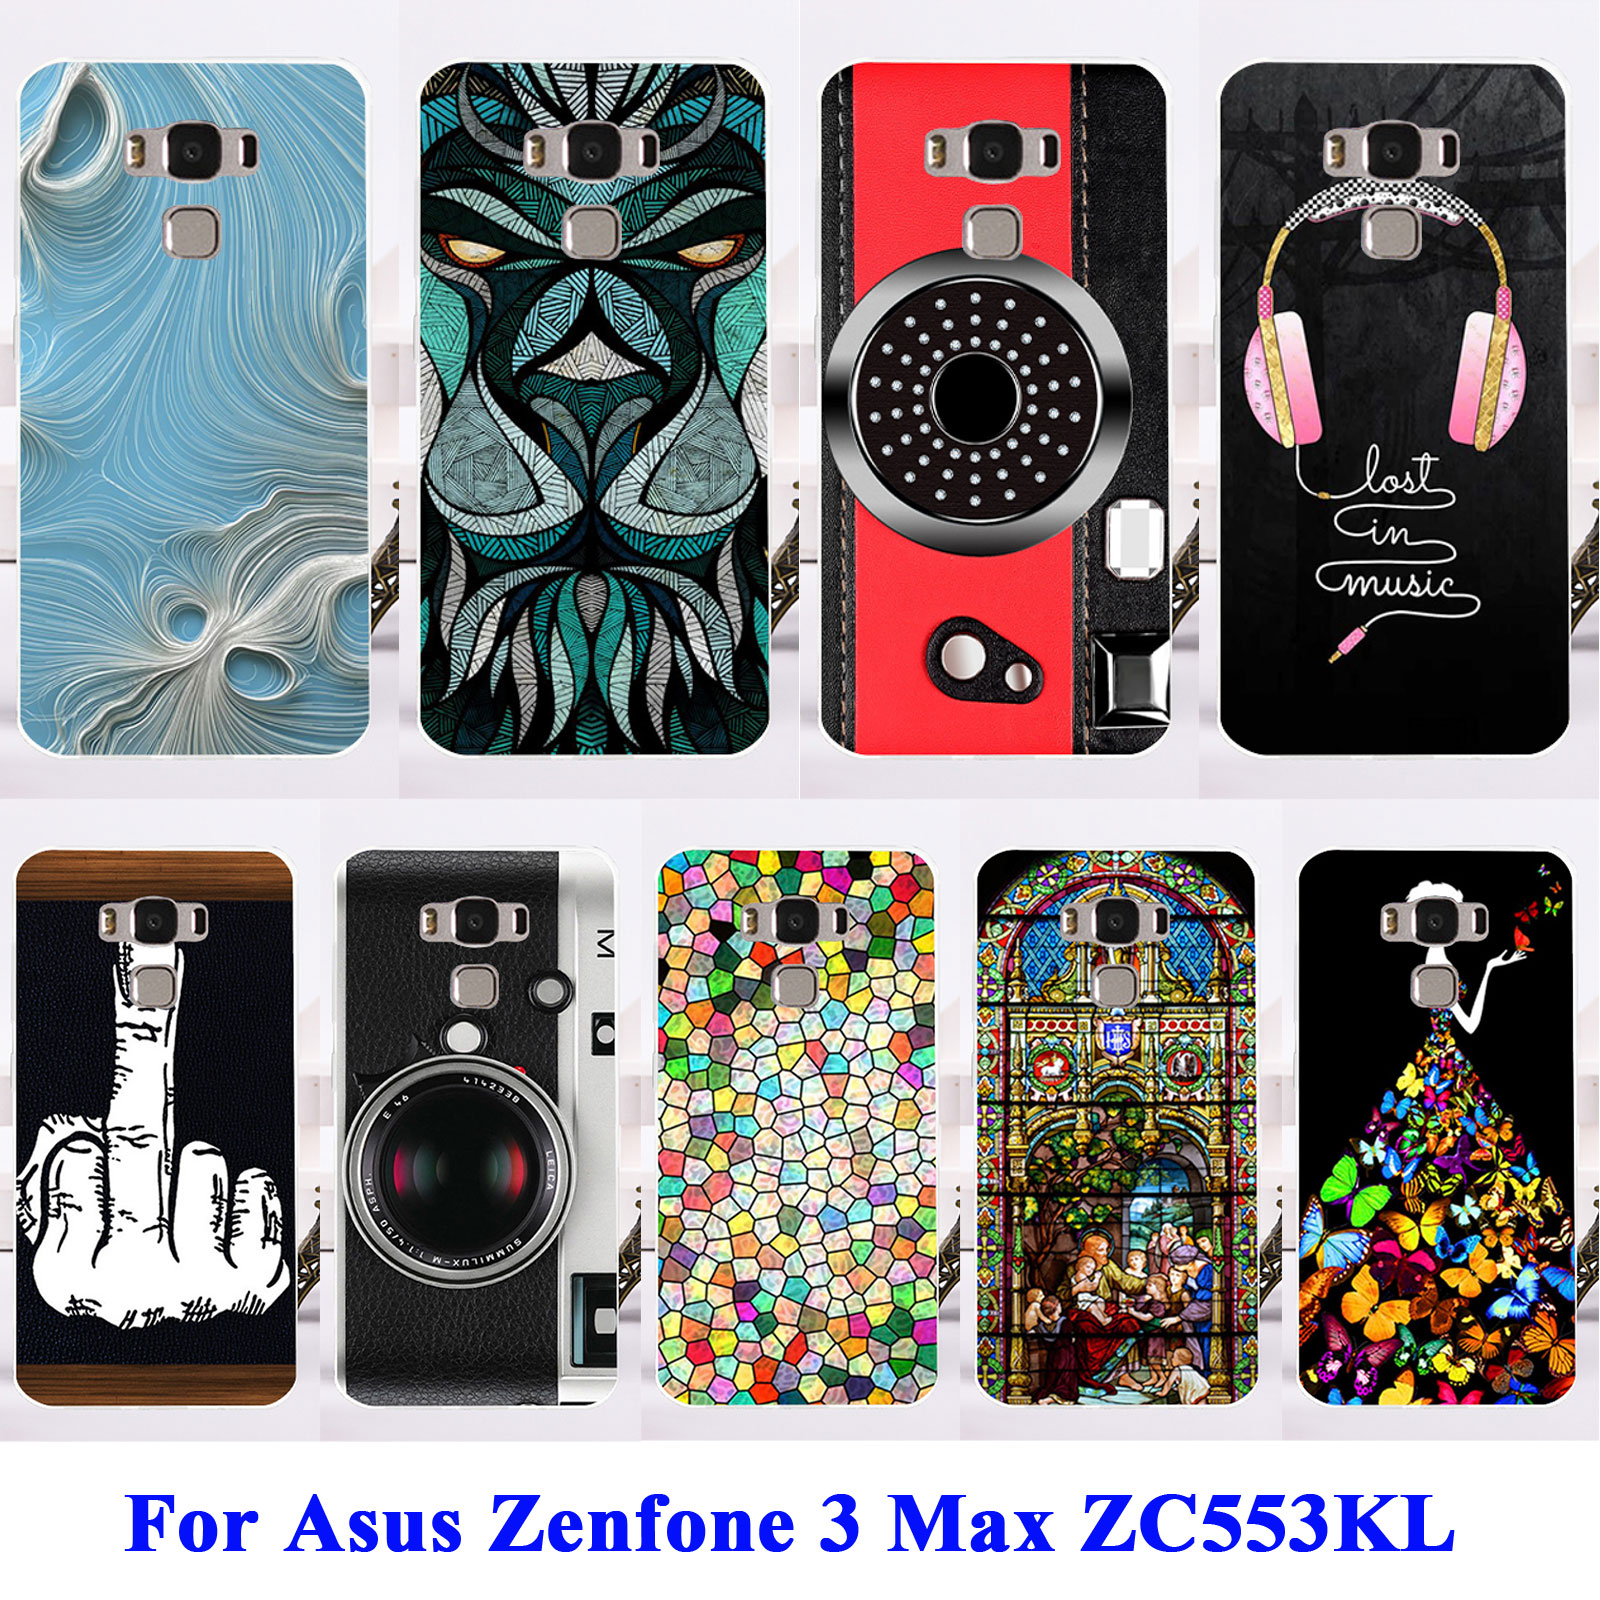 reputable site 911d2 cbc9e US $2.22 |AKABEILA Soft TPU Plastic Cases For Asus Zenfone 3 Max ZC553KL  ASUS X00DD X00DDA XOODD Zenfone3 Max 5.5 inch Bags Shell Covers-in Fitted  ...